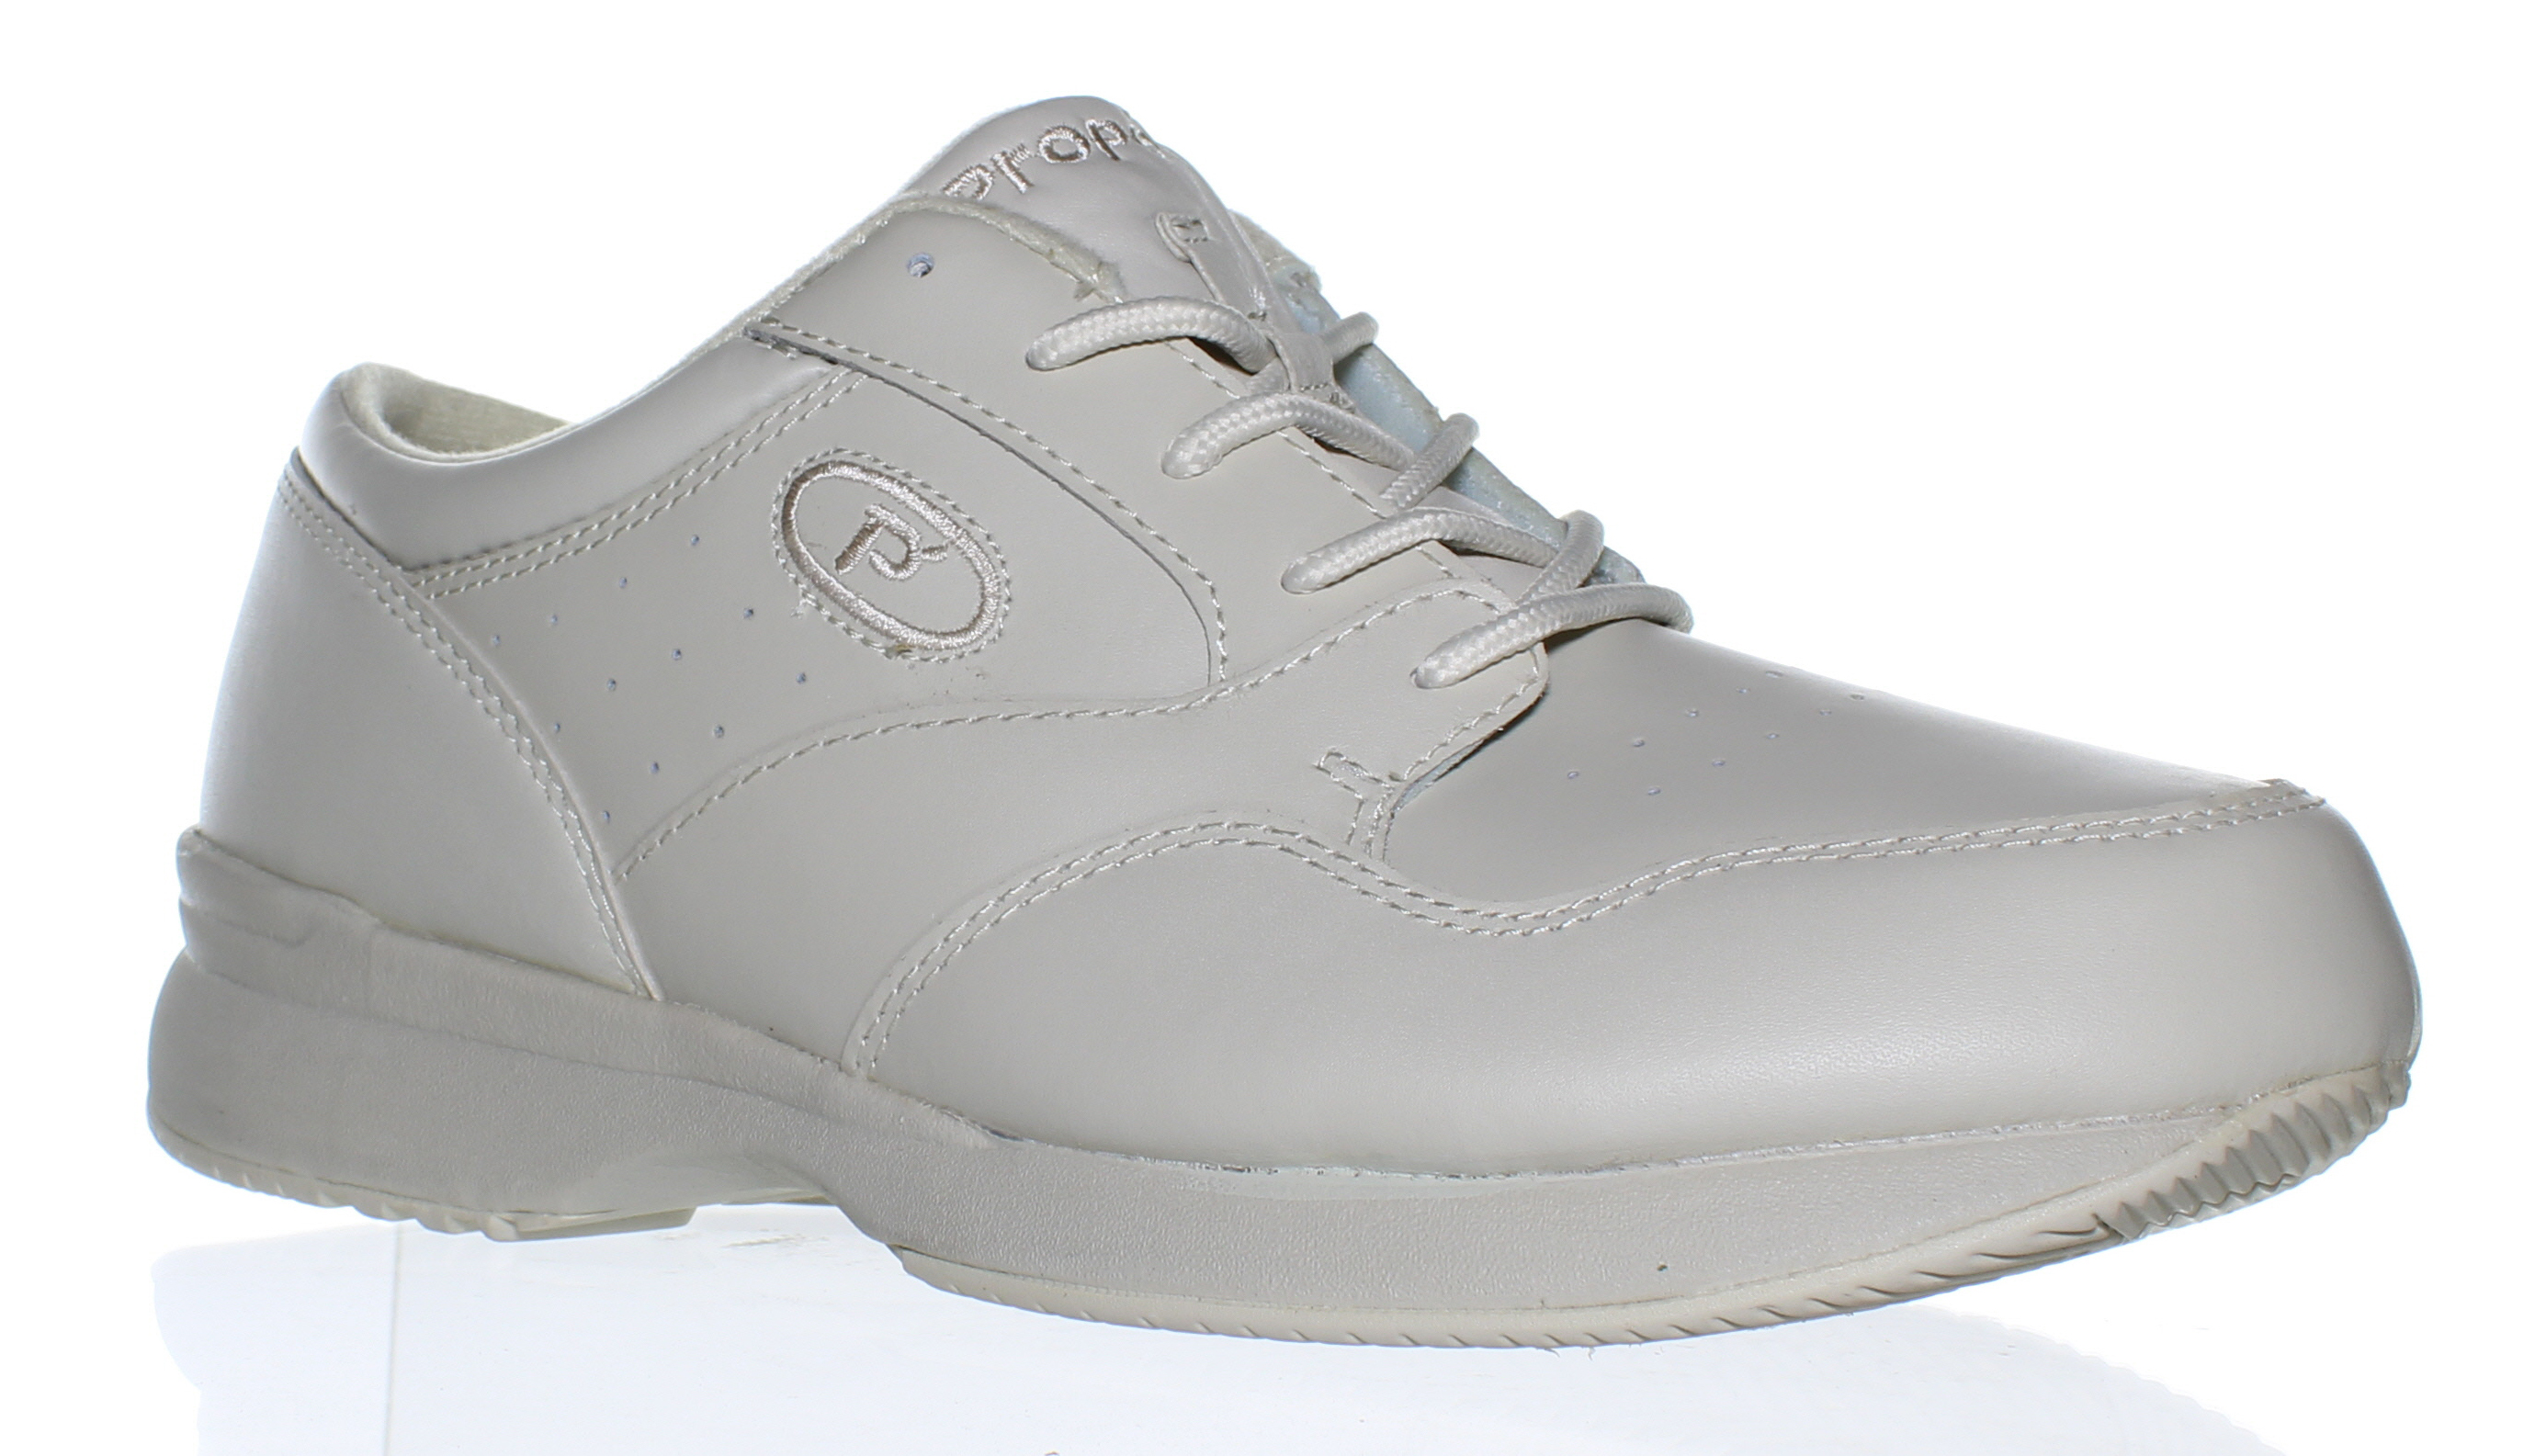 brand new 858f8 c5423 New Propet Mens Sport White Walking Walking Walking Shoes Size 11 (3E)  f53661